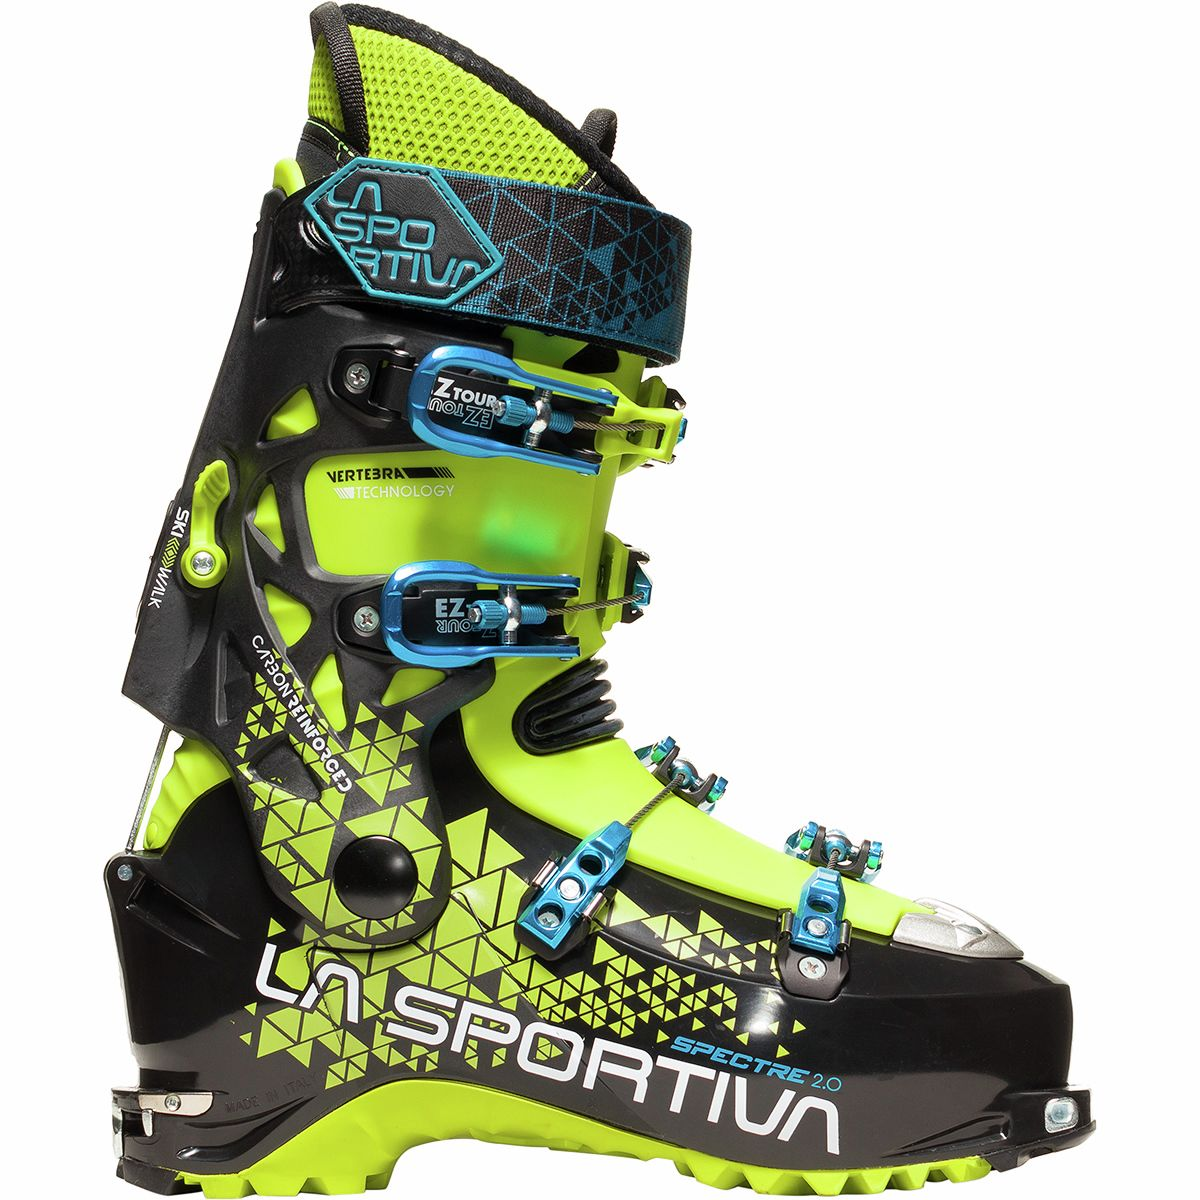 La Sportiva Spectre 2.0 Alpine Touring Boot | Backcountry.com